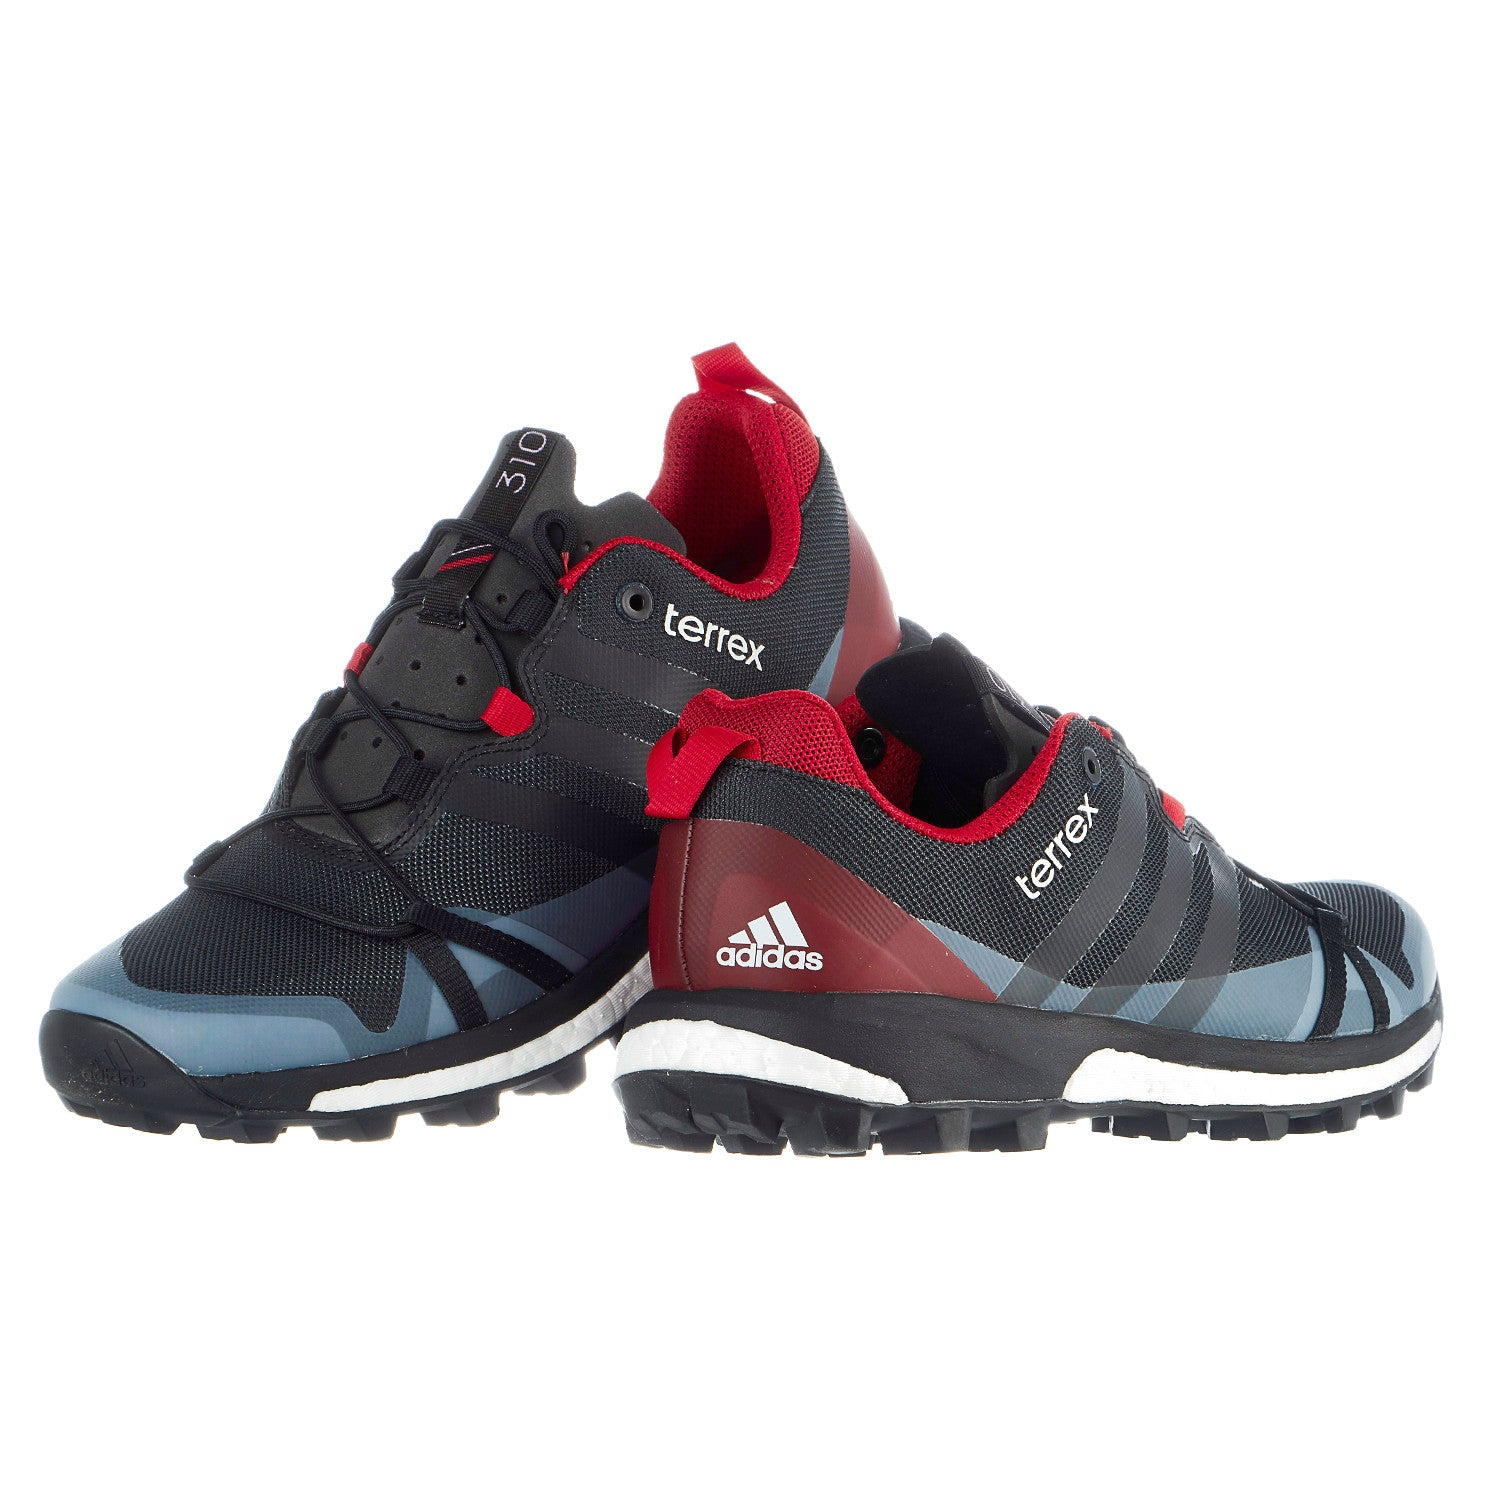 best website 01cc7 aa8c3 Adidas Terrex Agravic Shoe - Men s - Shoplifestyle